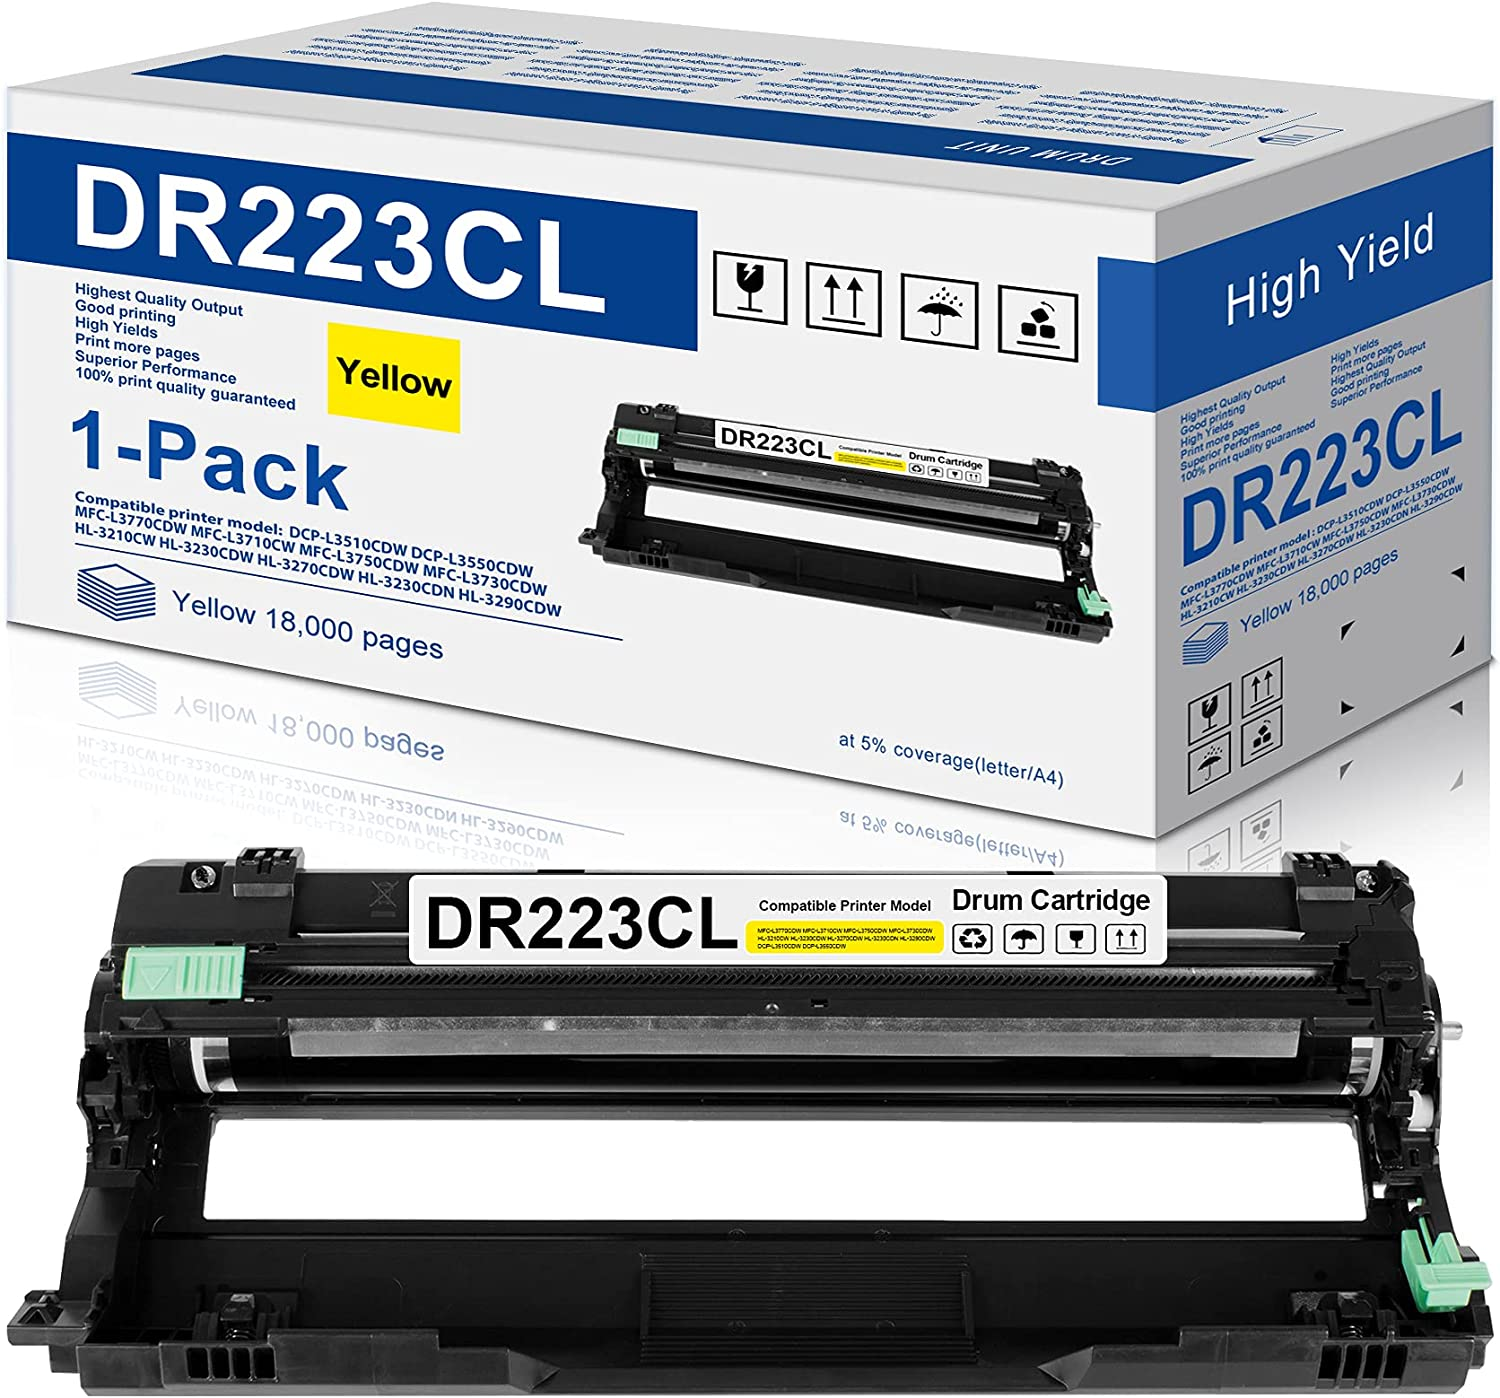 1-Pack Yellow Compatible DR223CL Drum Unit Replacement for Brother DR-223CL Drum Works with Brother MFC-l3770CDW MFC-l3750CDW MFC-l3710CW HL-l3290CDW HL-l3270CDW HL-l3210CDW HL-L3230CDW Printer